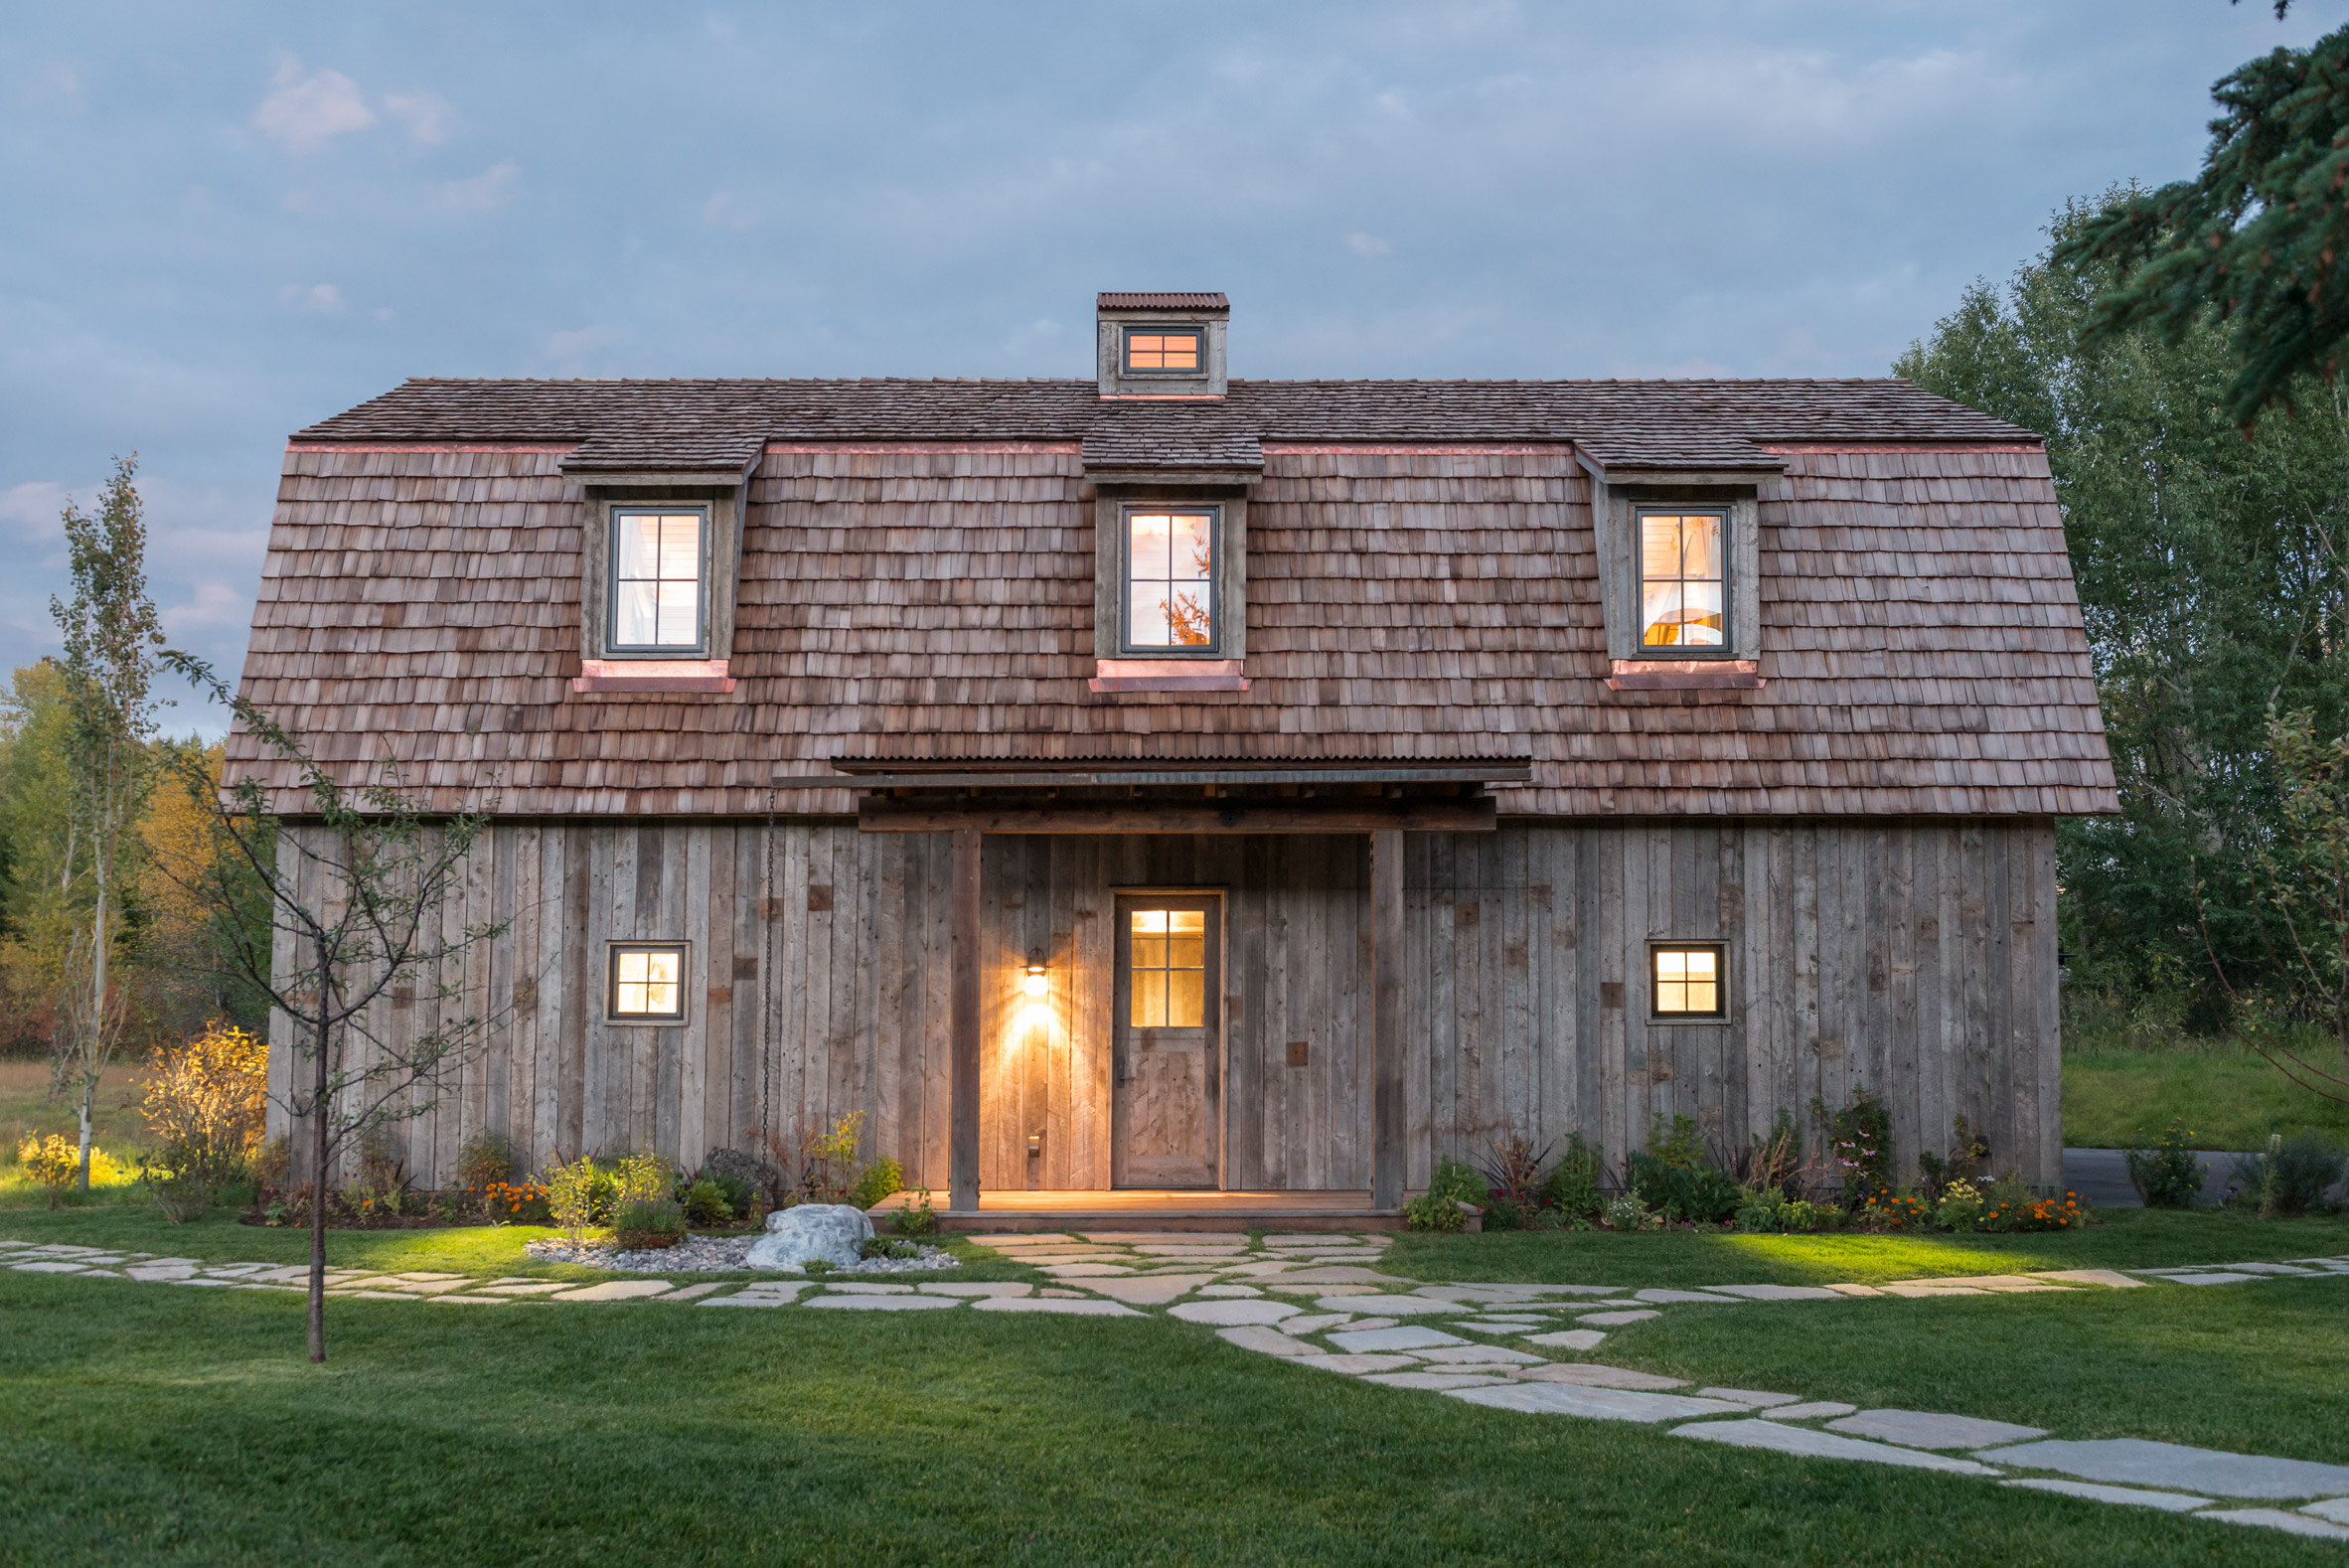 Carney logan burke creates barn shaped guest house in for Barn shaped garage